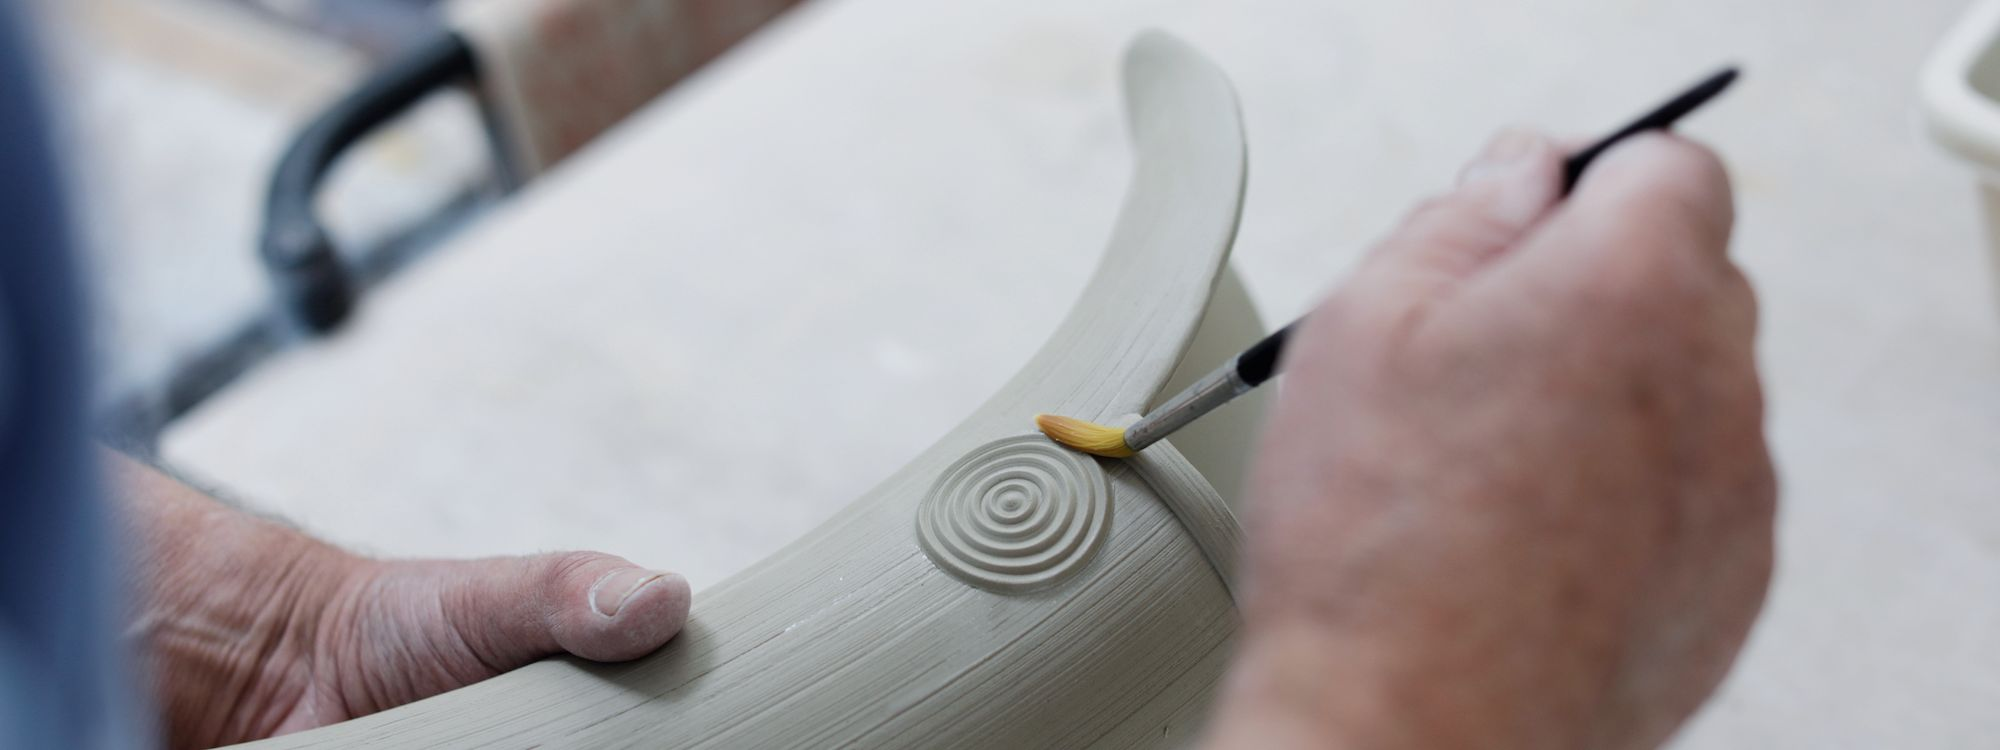 Walter Keeler. Photo by Layton Thompson for Ceramic Review